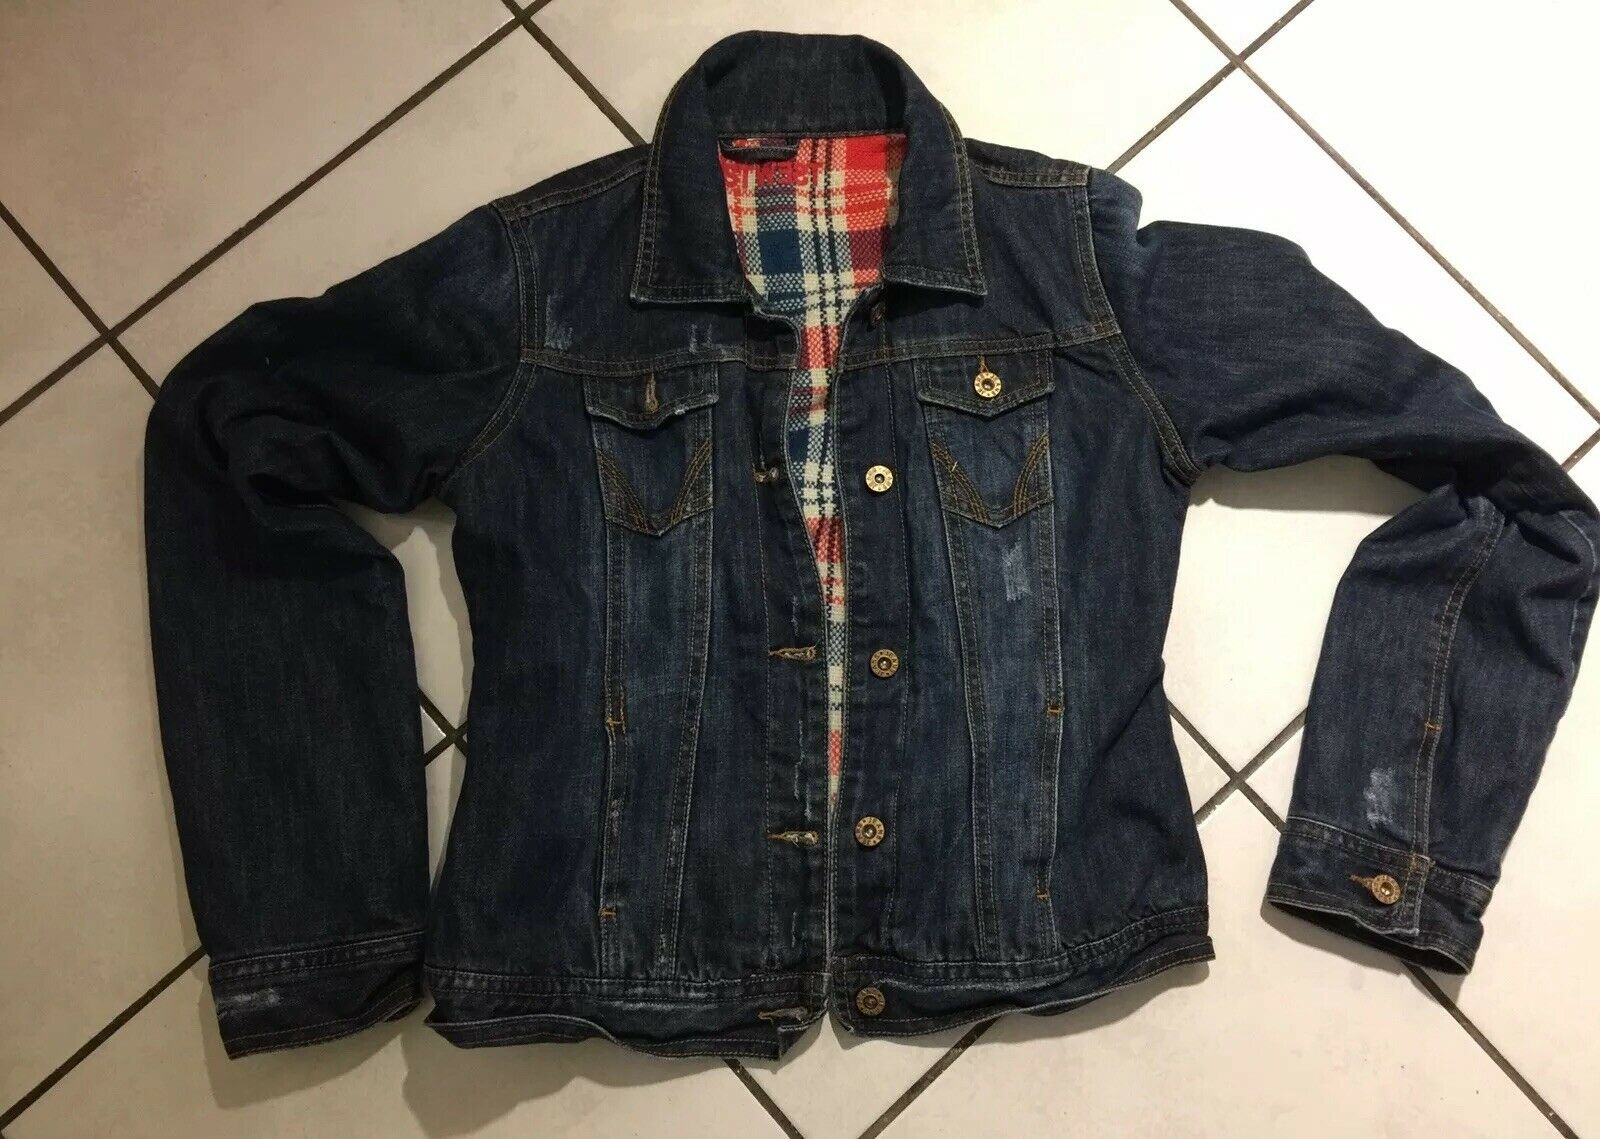 Lot fille 14.16. ans jean noir only  best mountain  blouson jeans ralph lauren